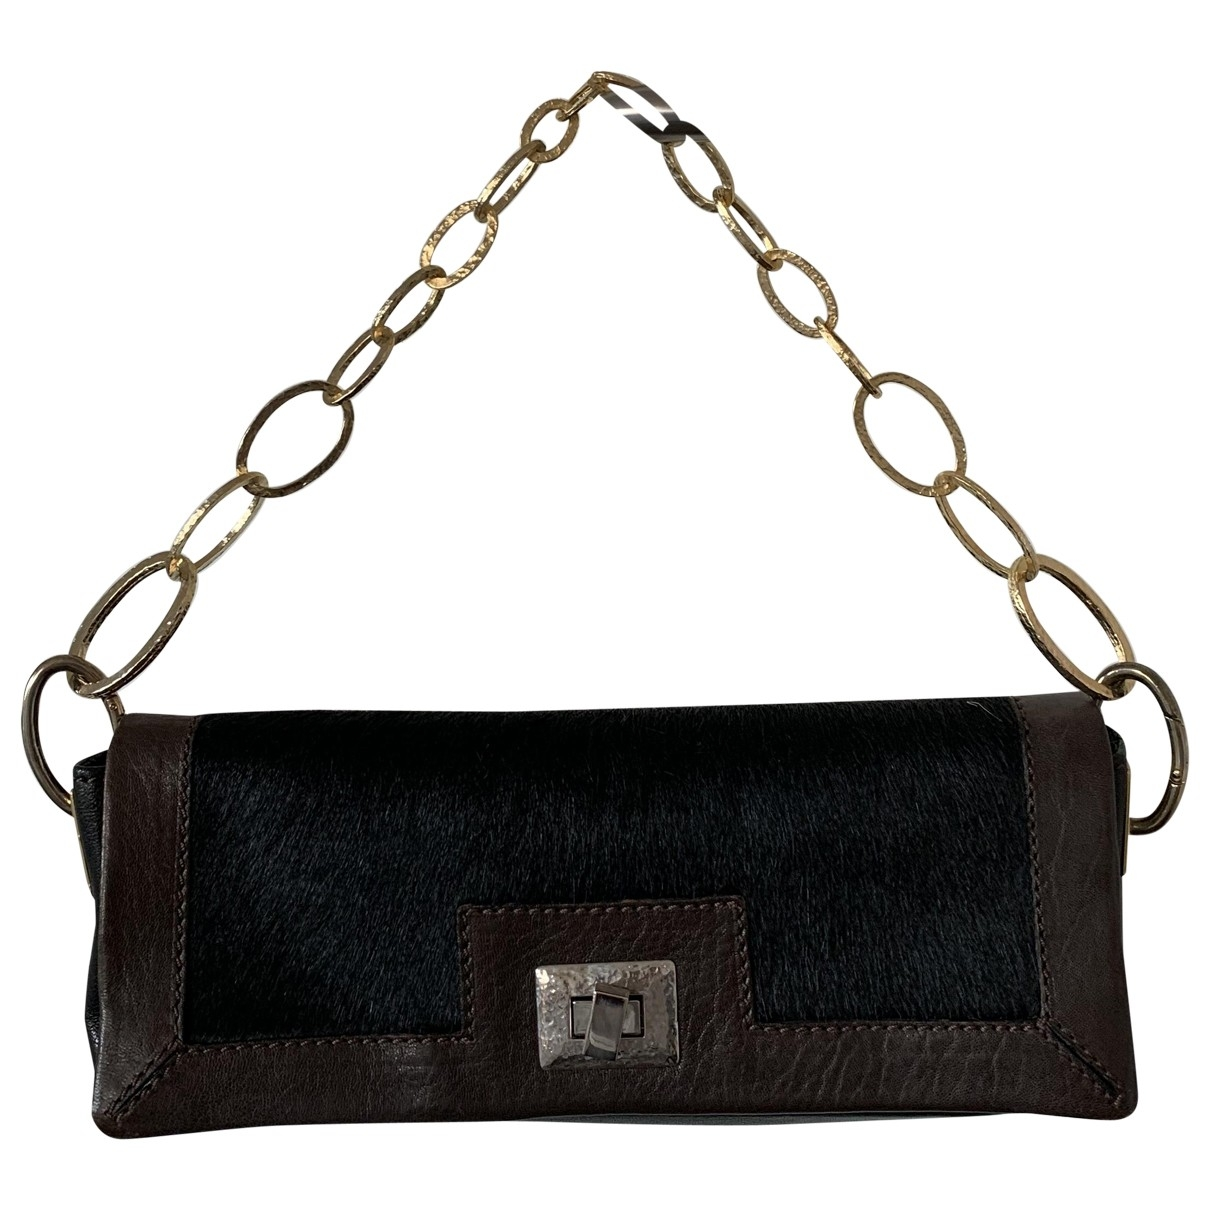 Dorothee Schumacher \N Brown Pony-style calfskin Clutch bag for Women \N